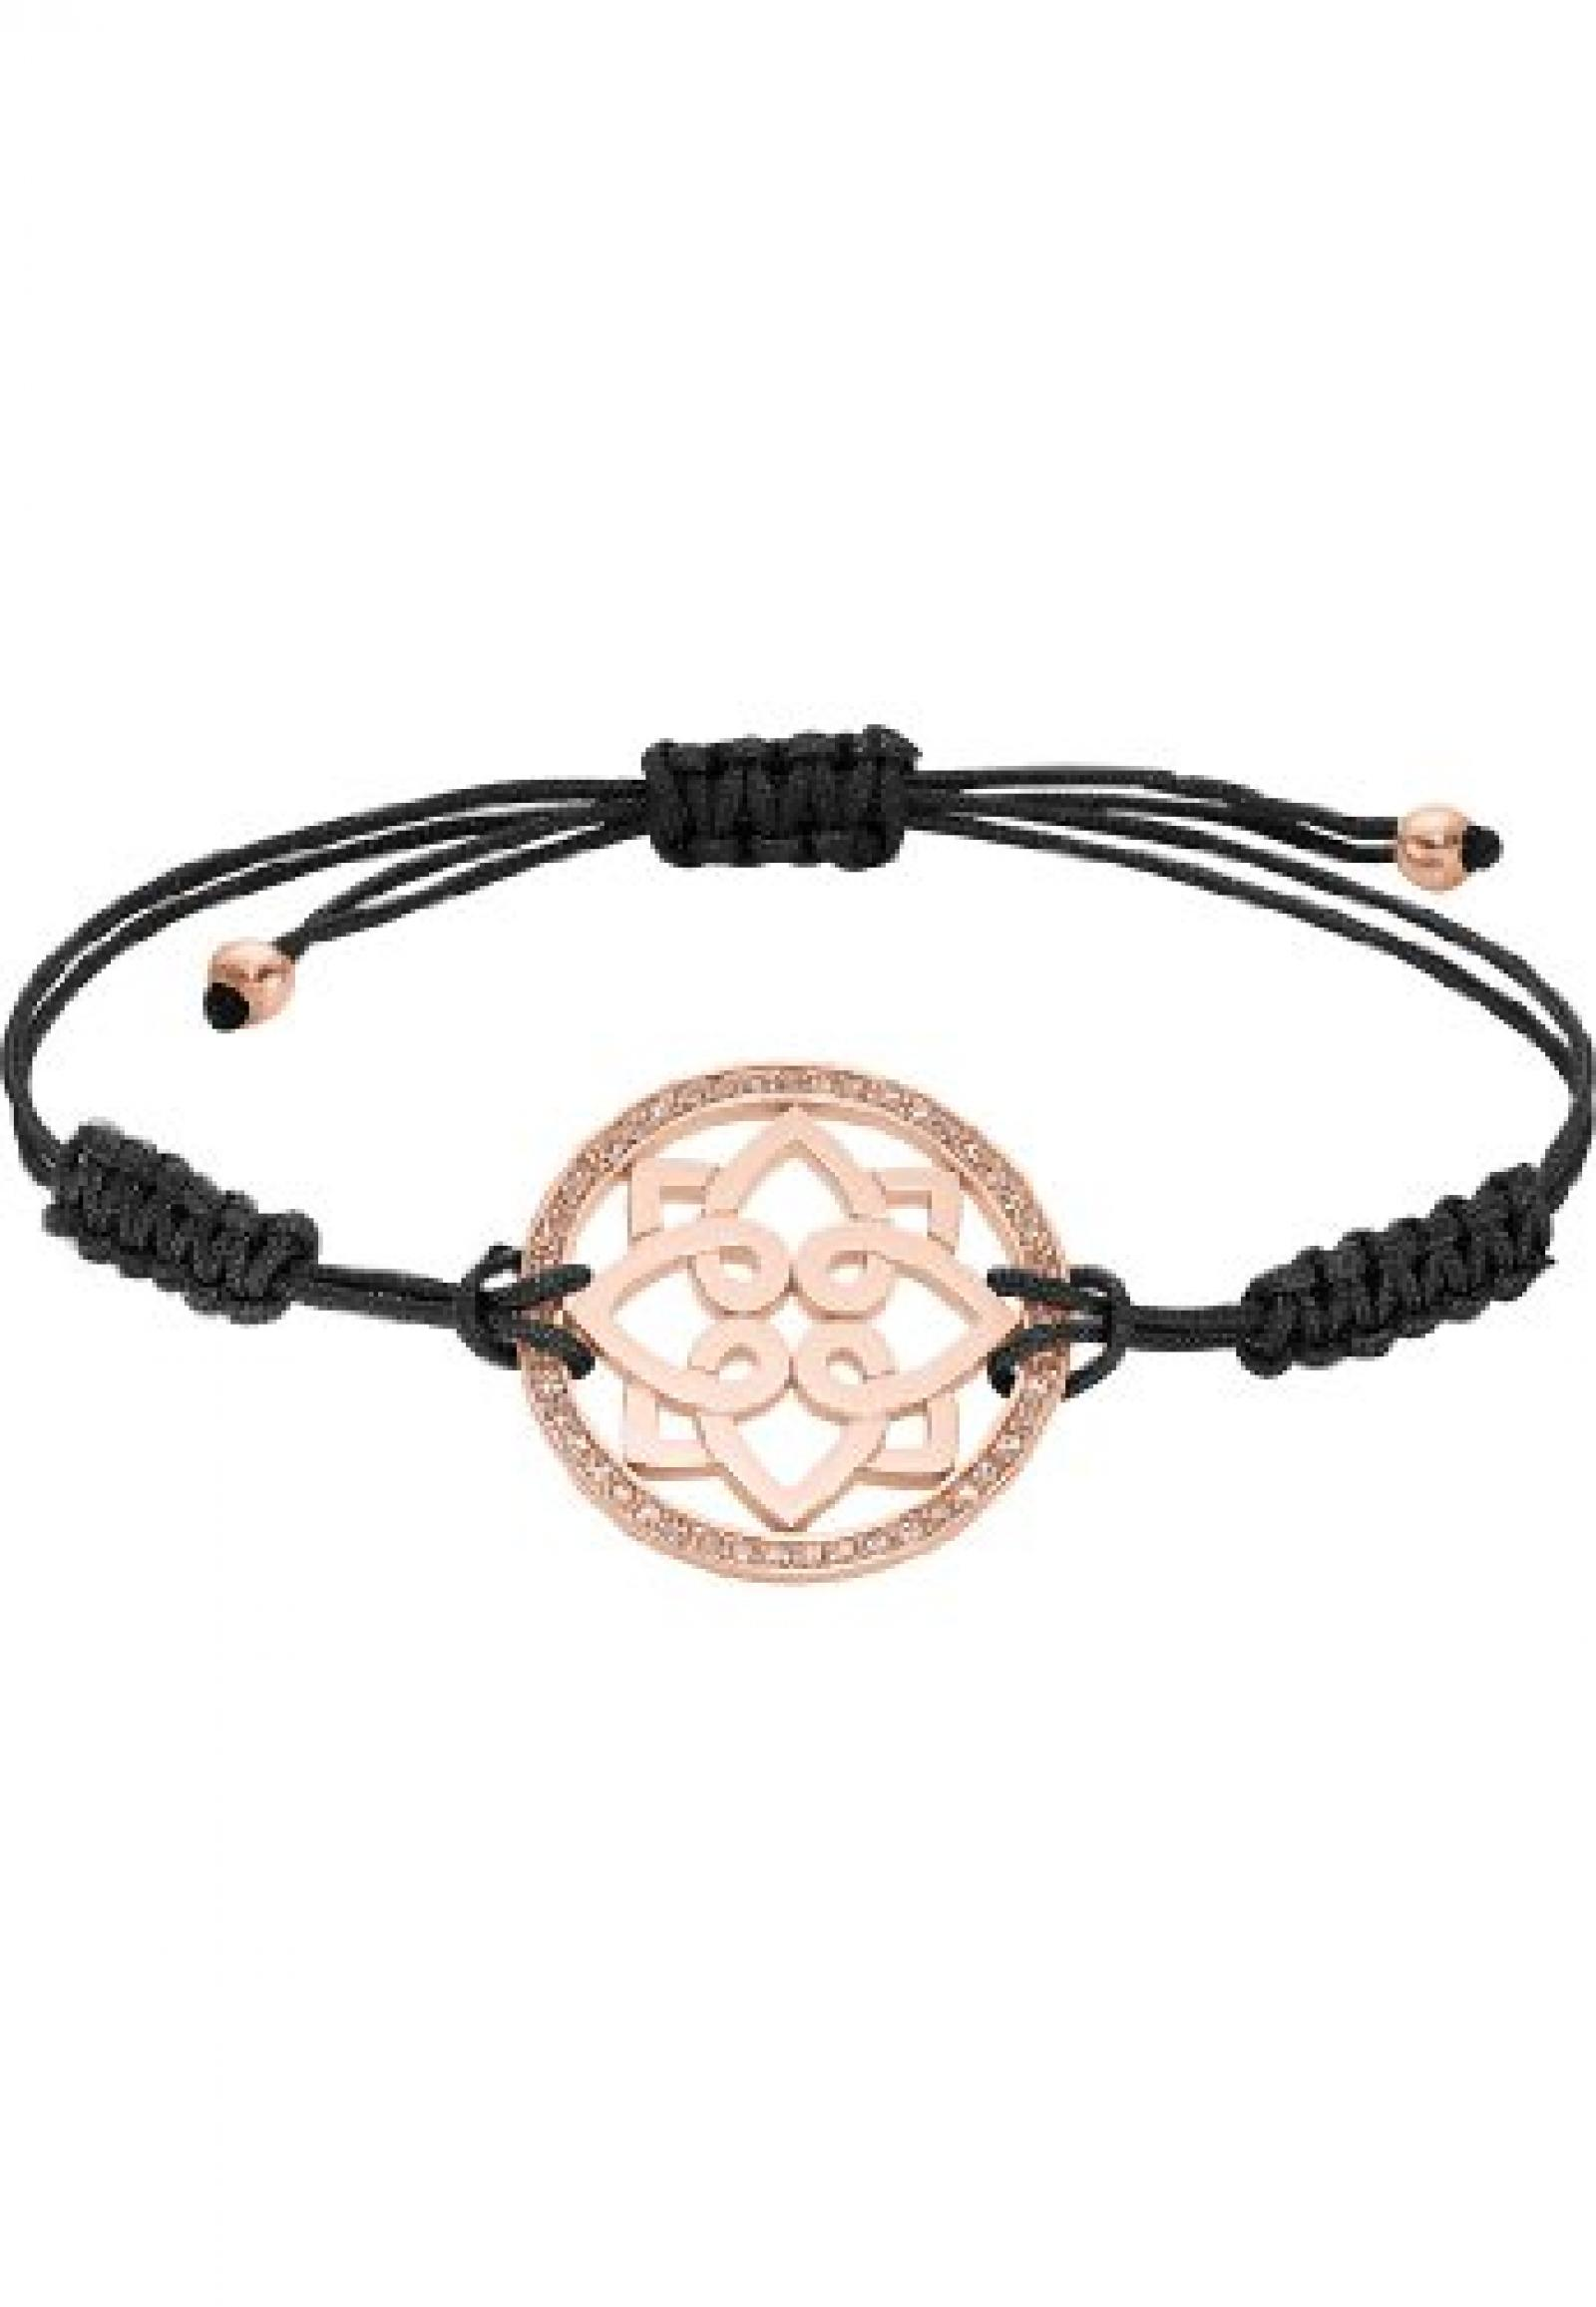 JETTE Magic Passion Damen-Armband CHAKRA Metall 47 Kristalle rosé, One Size